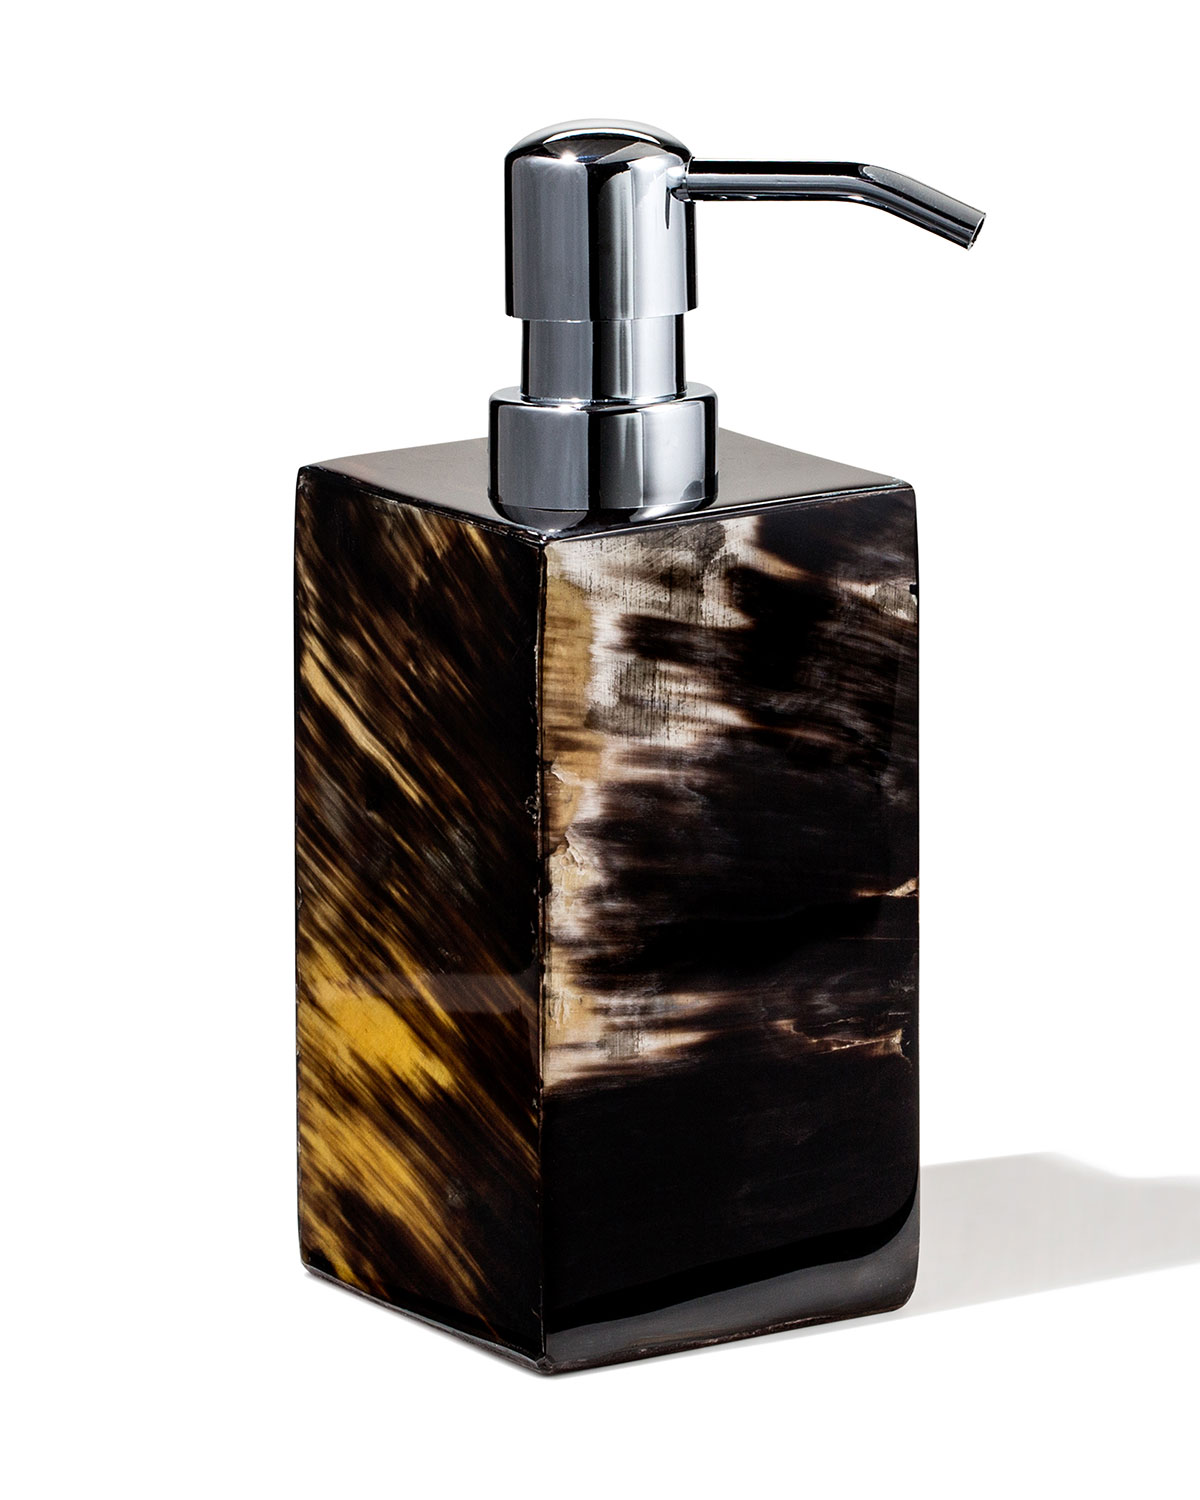 Ladorada HORN SOAP PUMP DISPENSER